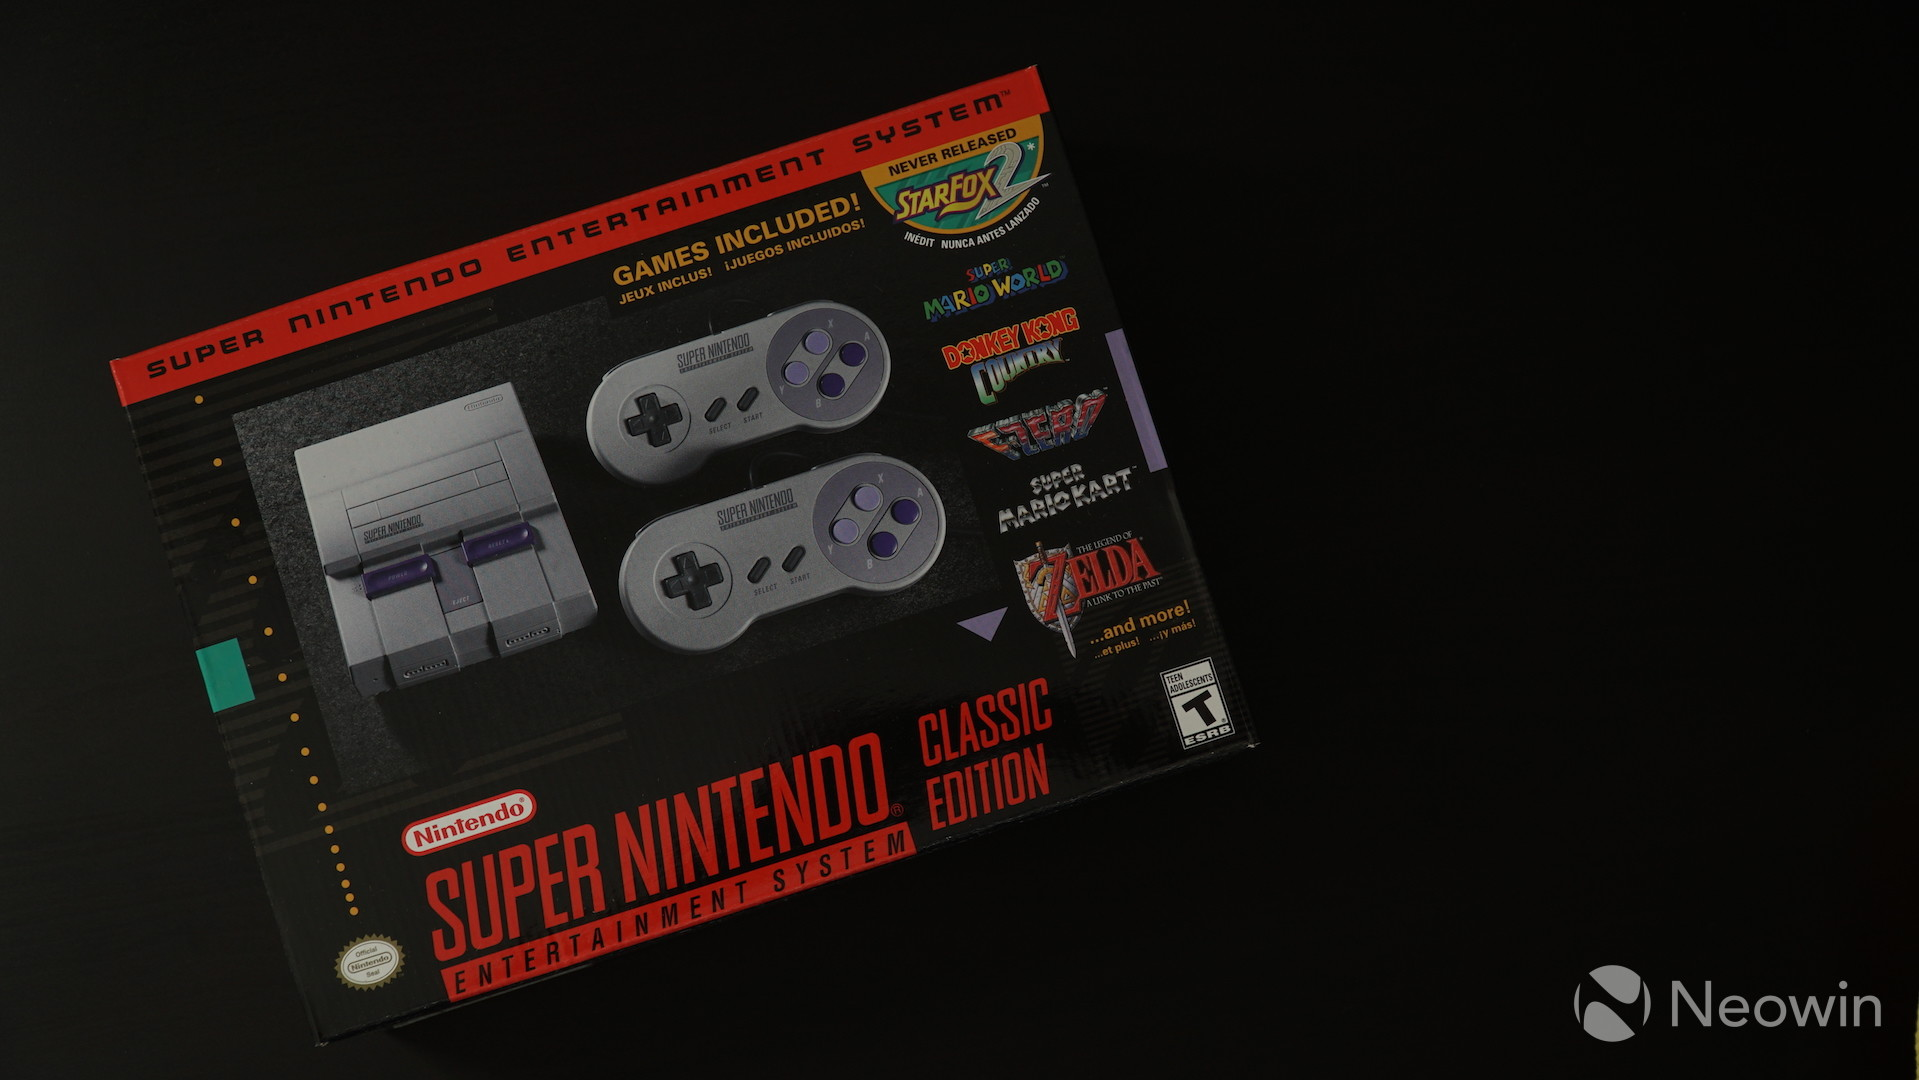 A Week Later Thousands Of Snes Classic Editions Are On Ebay For